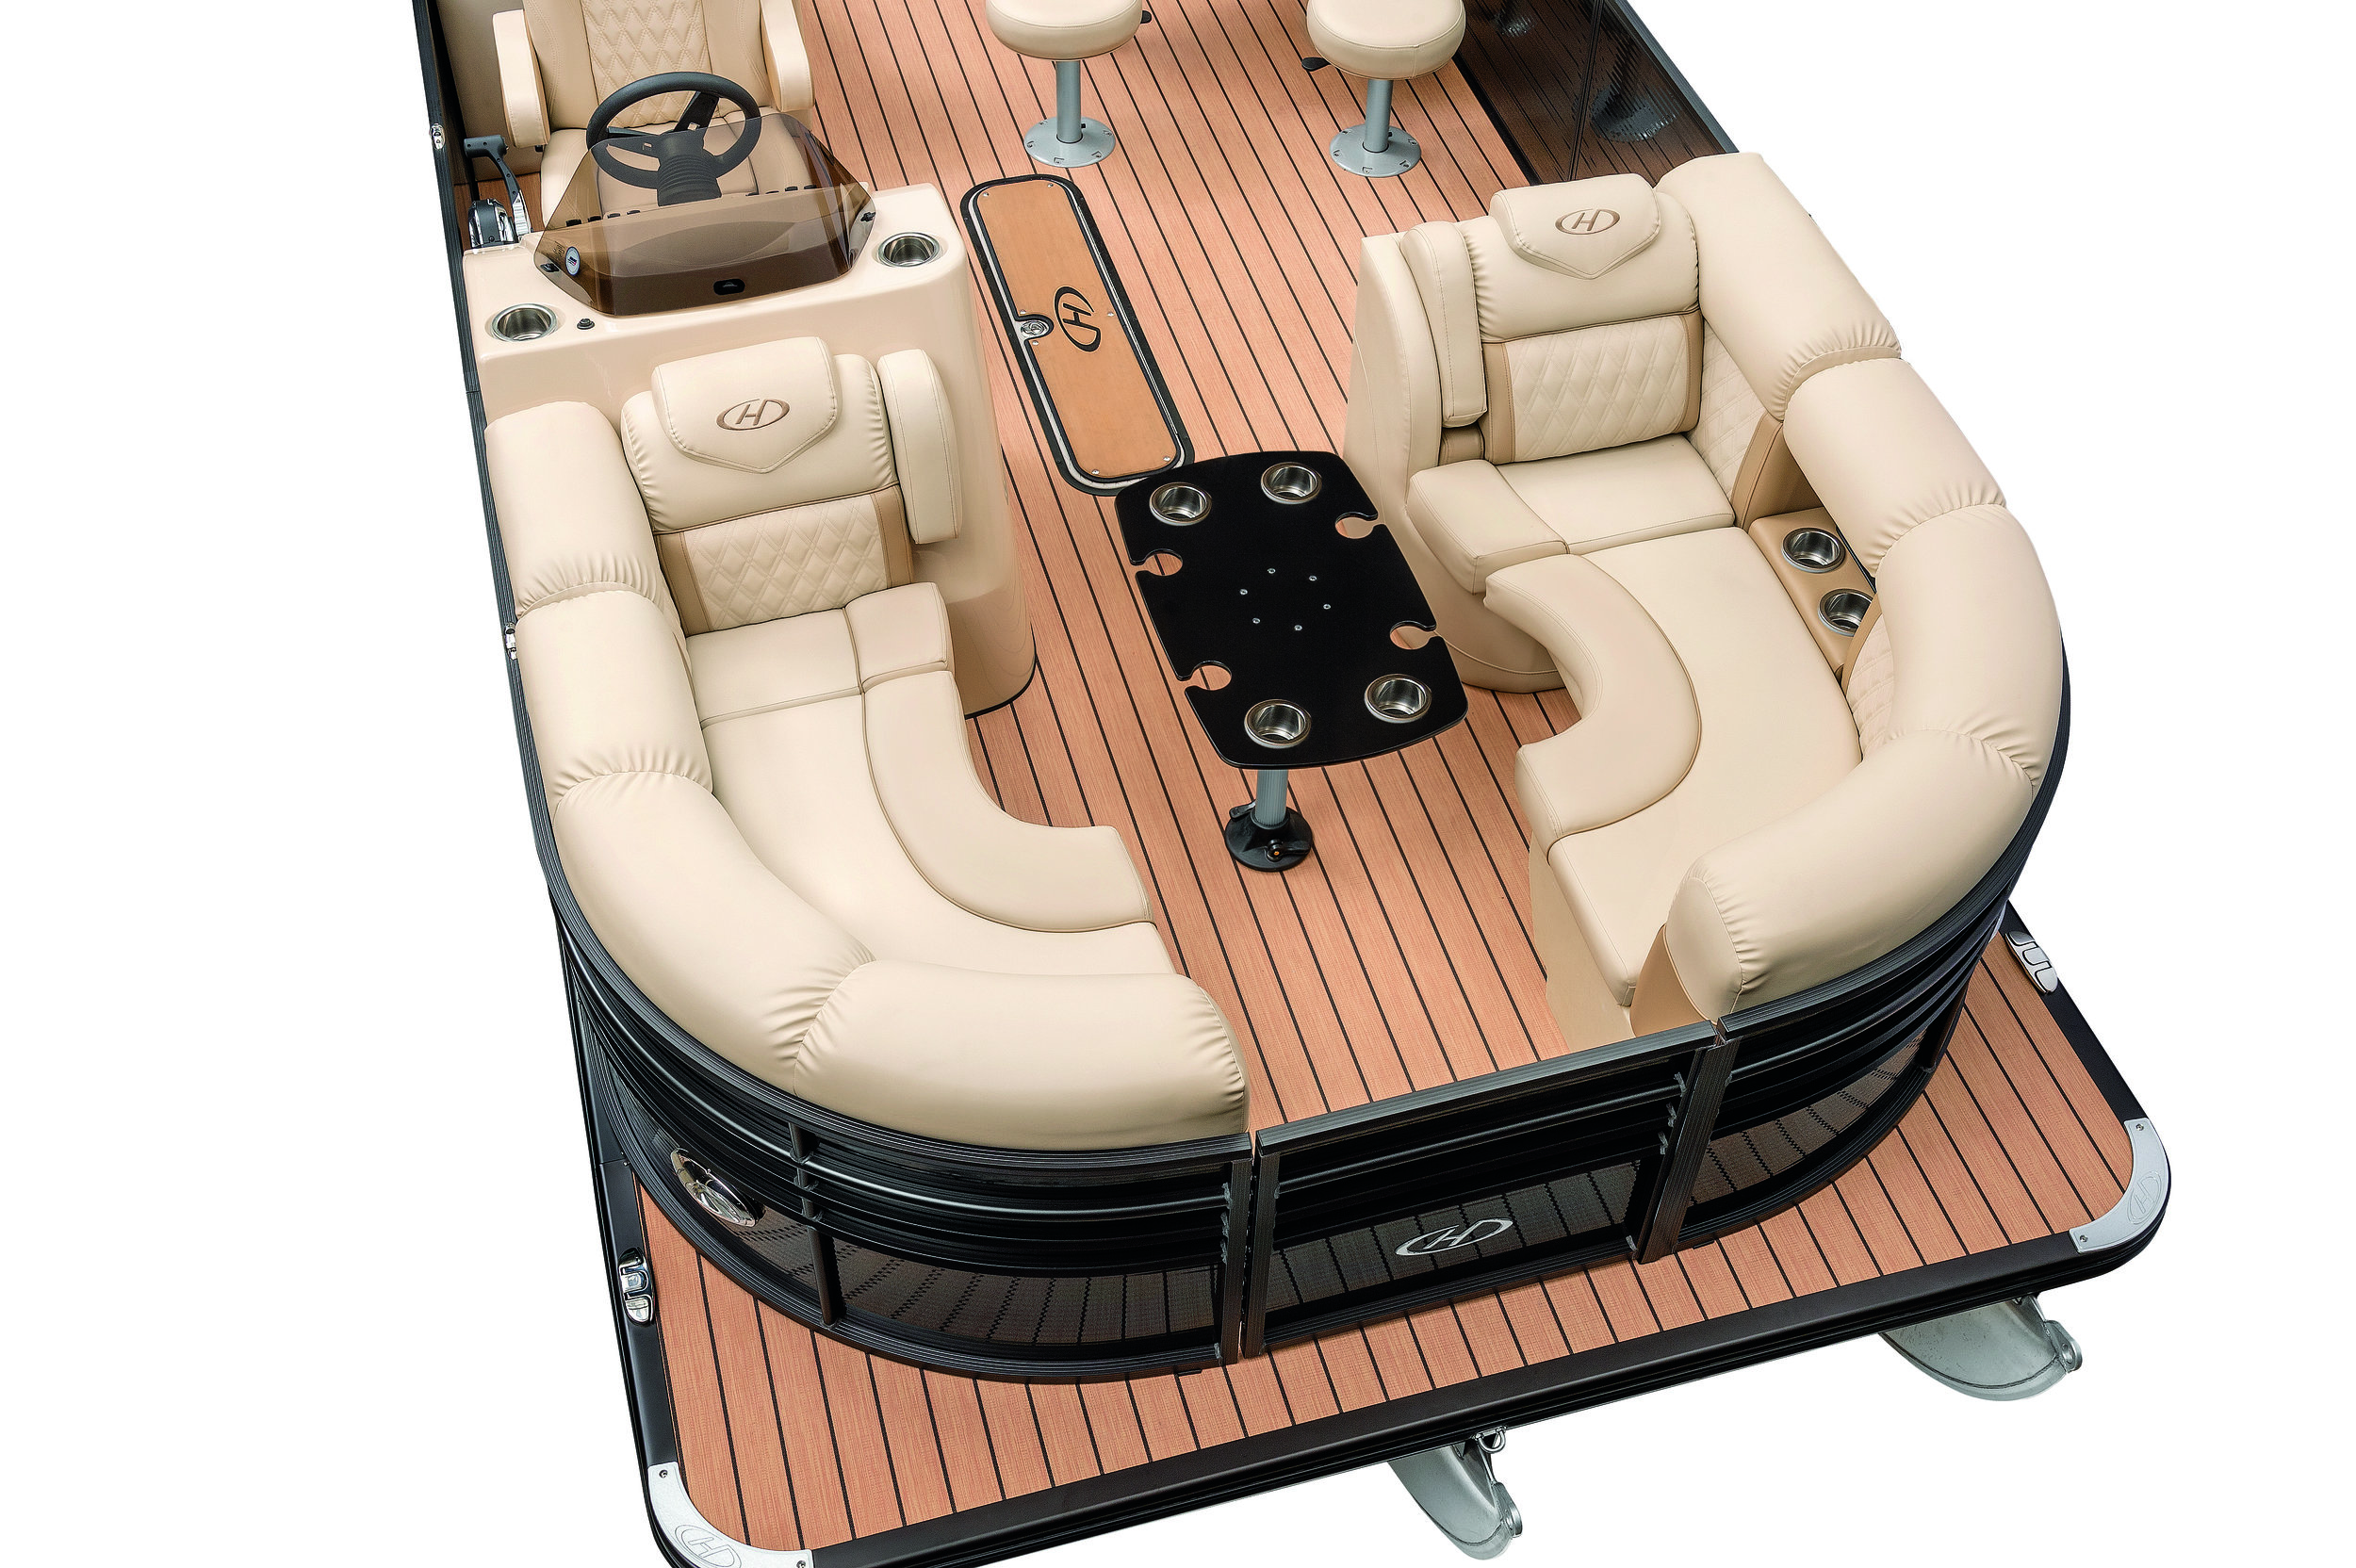 The interior has been upgraded as well by using a softer, more elegant seat base. This design would become the foundation for the brand language which has been carried forward to the 2018 Grand Mariner. The flowing lines are something that is unique for Harris and helps define the brand as a top competitor in the luxury sector of pontoons.